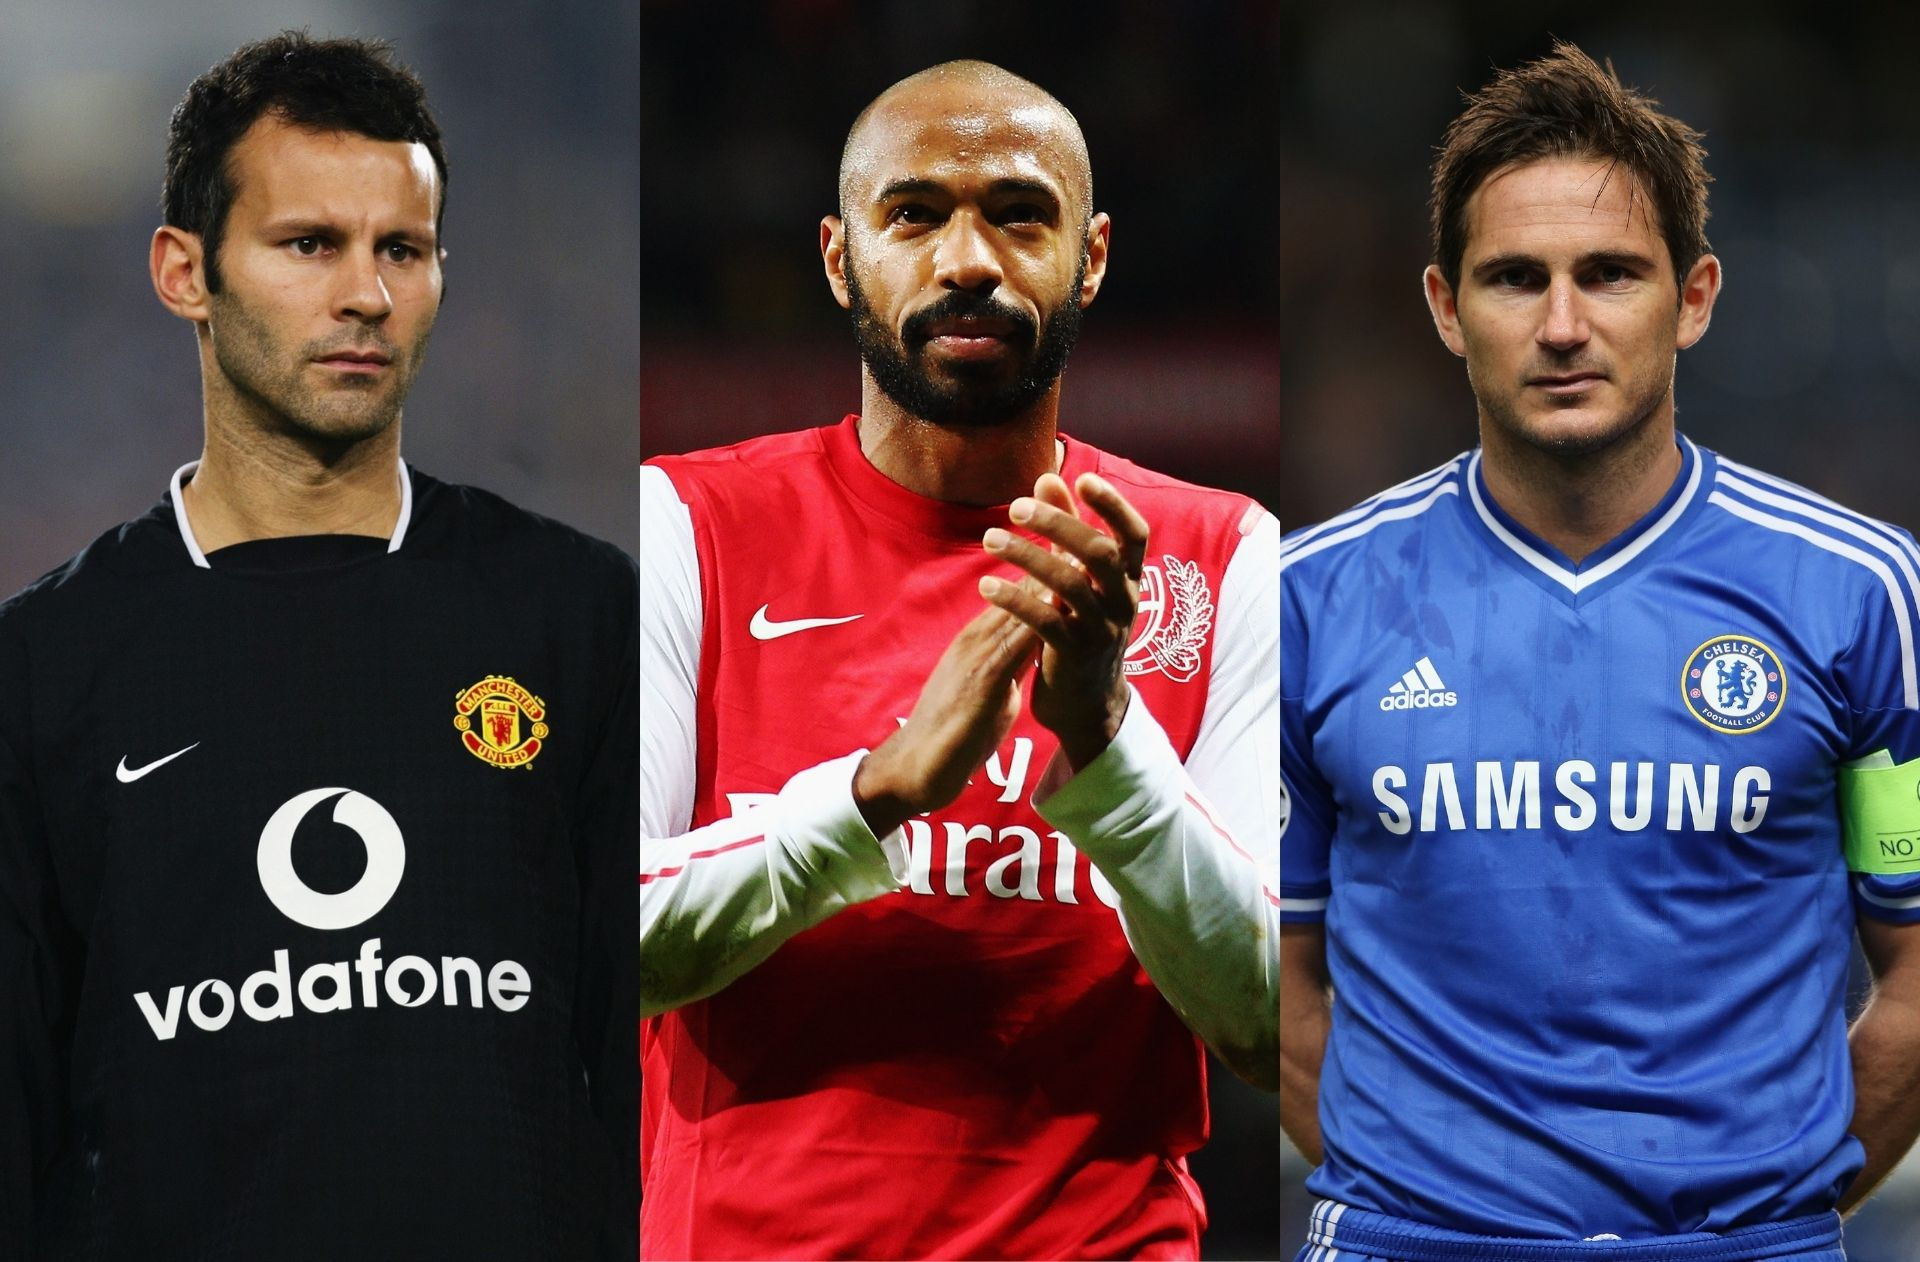 Top 10 legends for the Premier League Hall of Fame